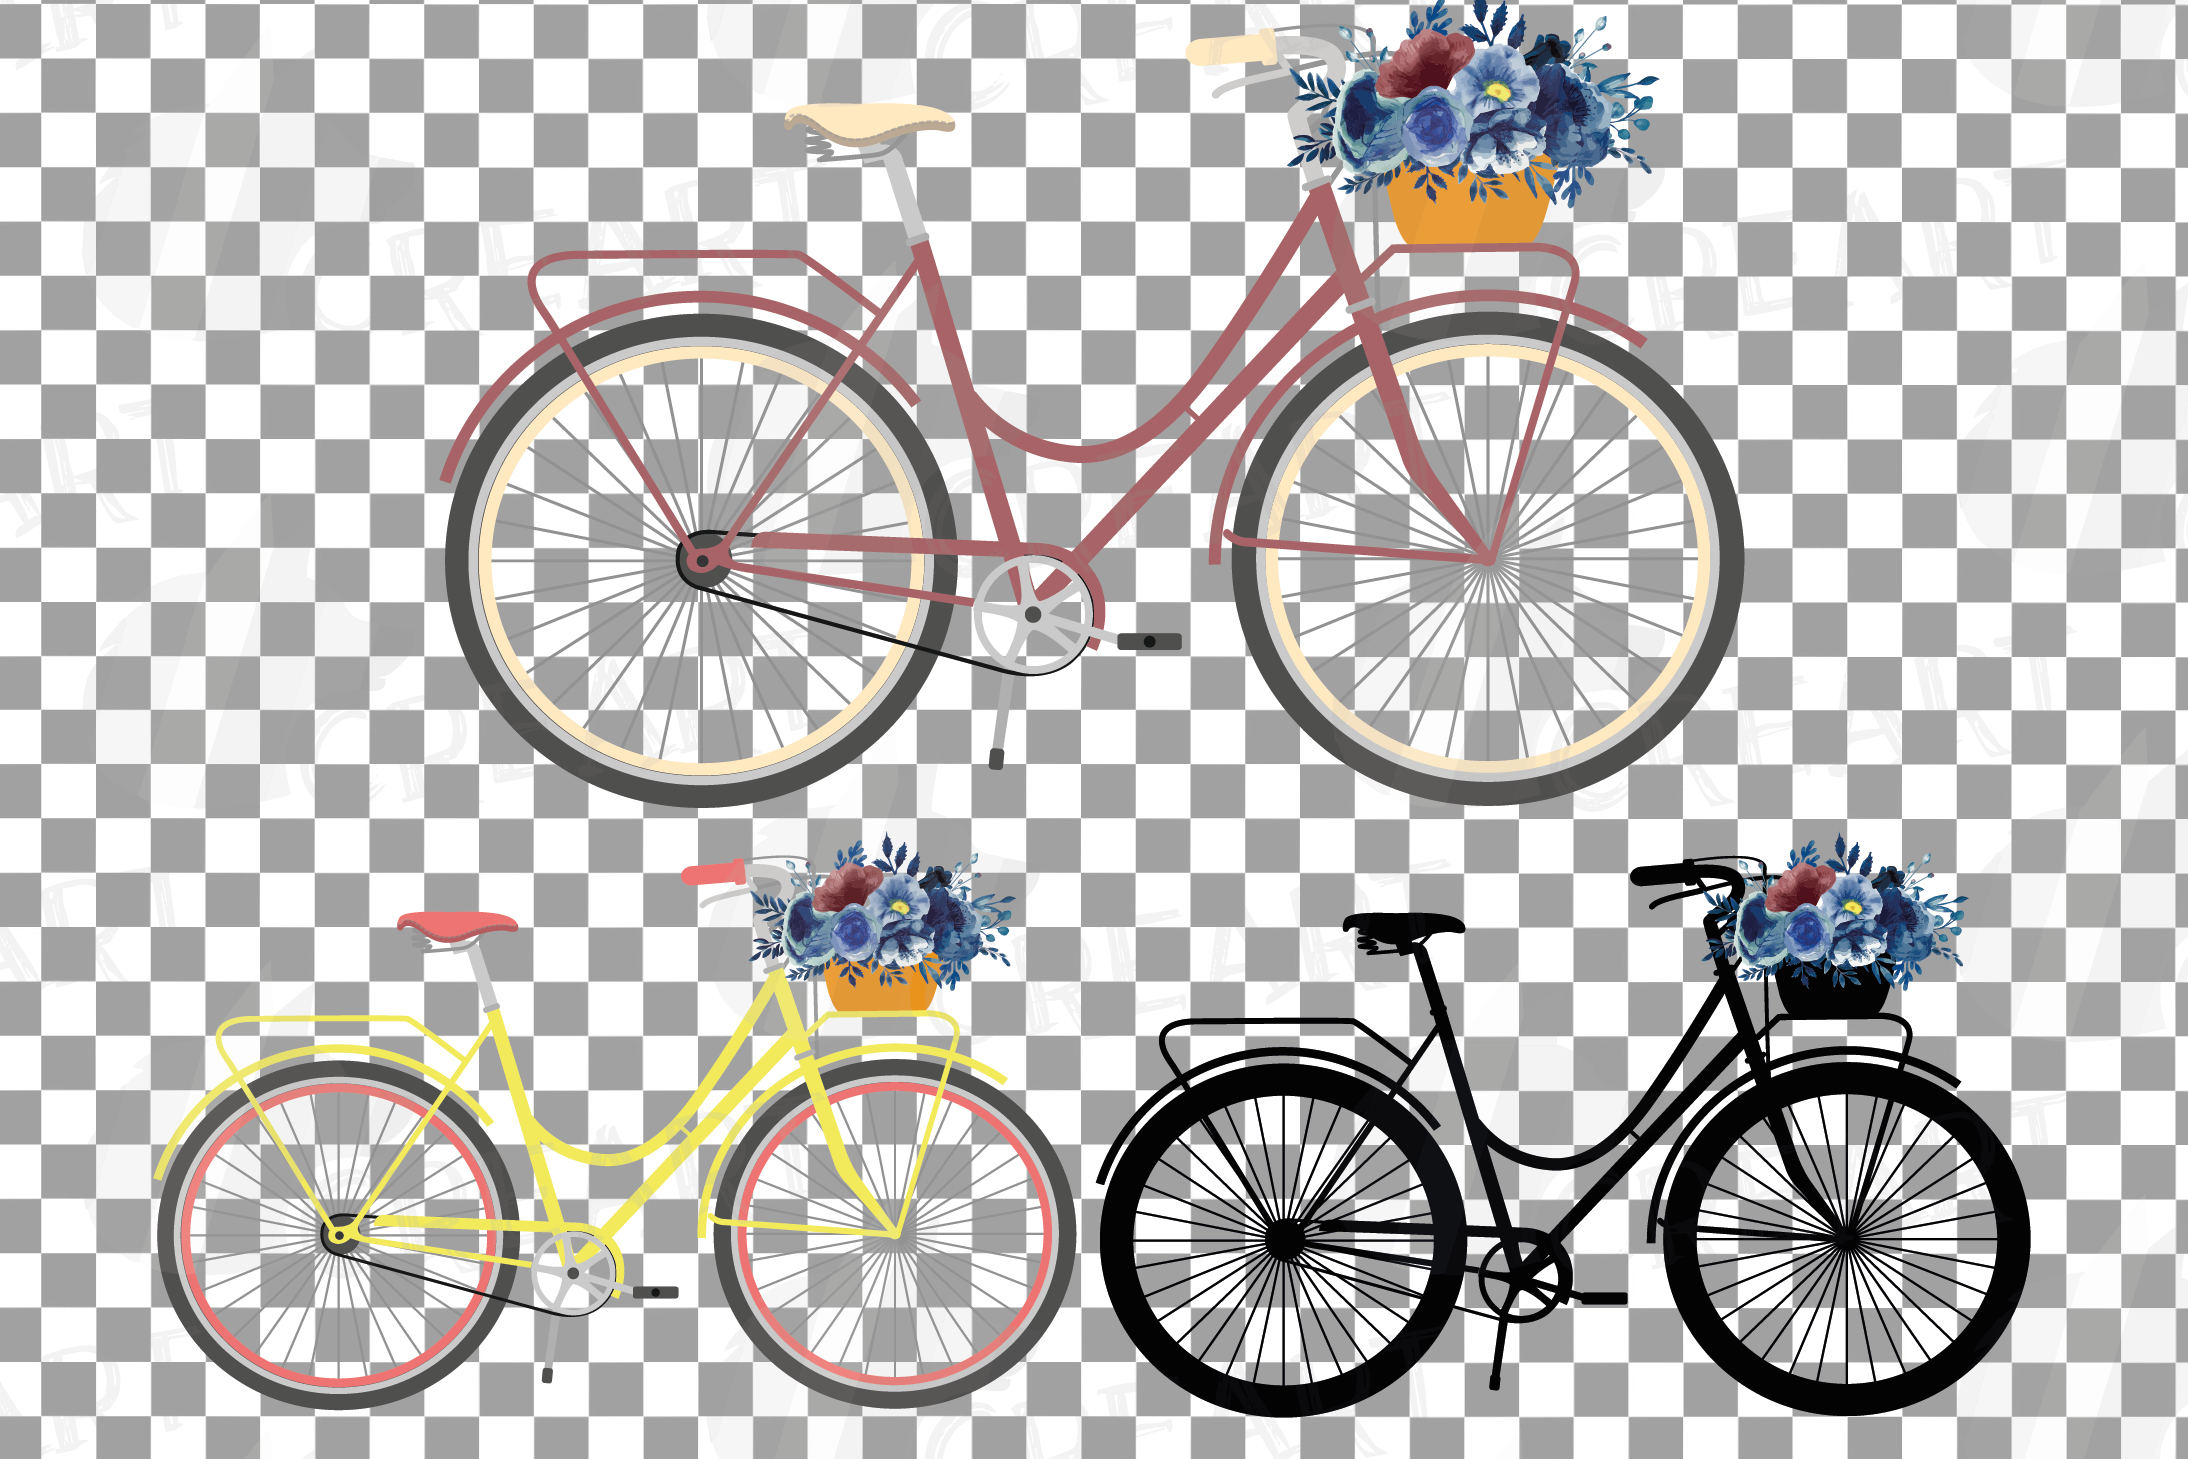 Navy blue floral blush and yellow bicycles clip art pack example image 2